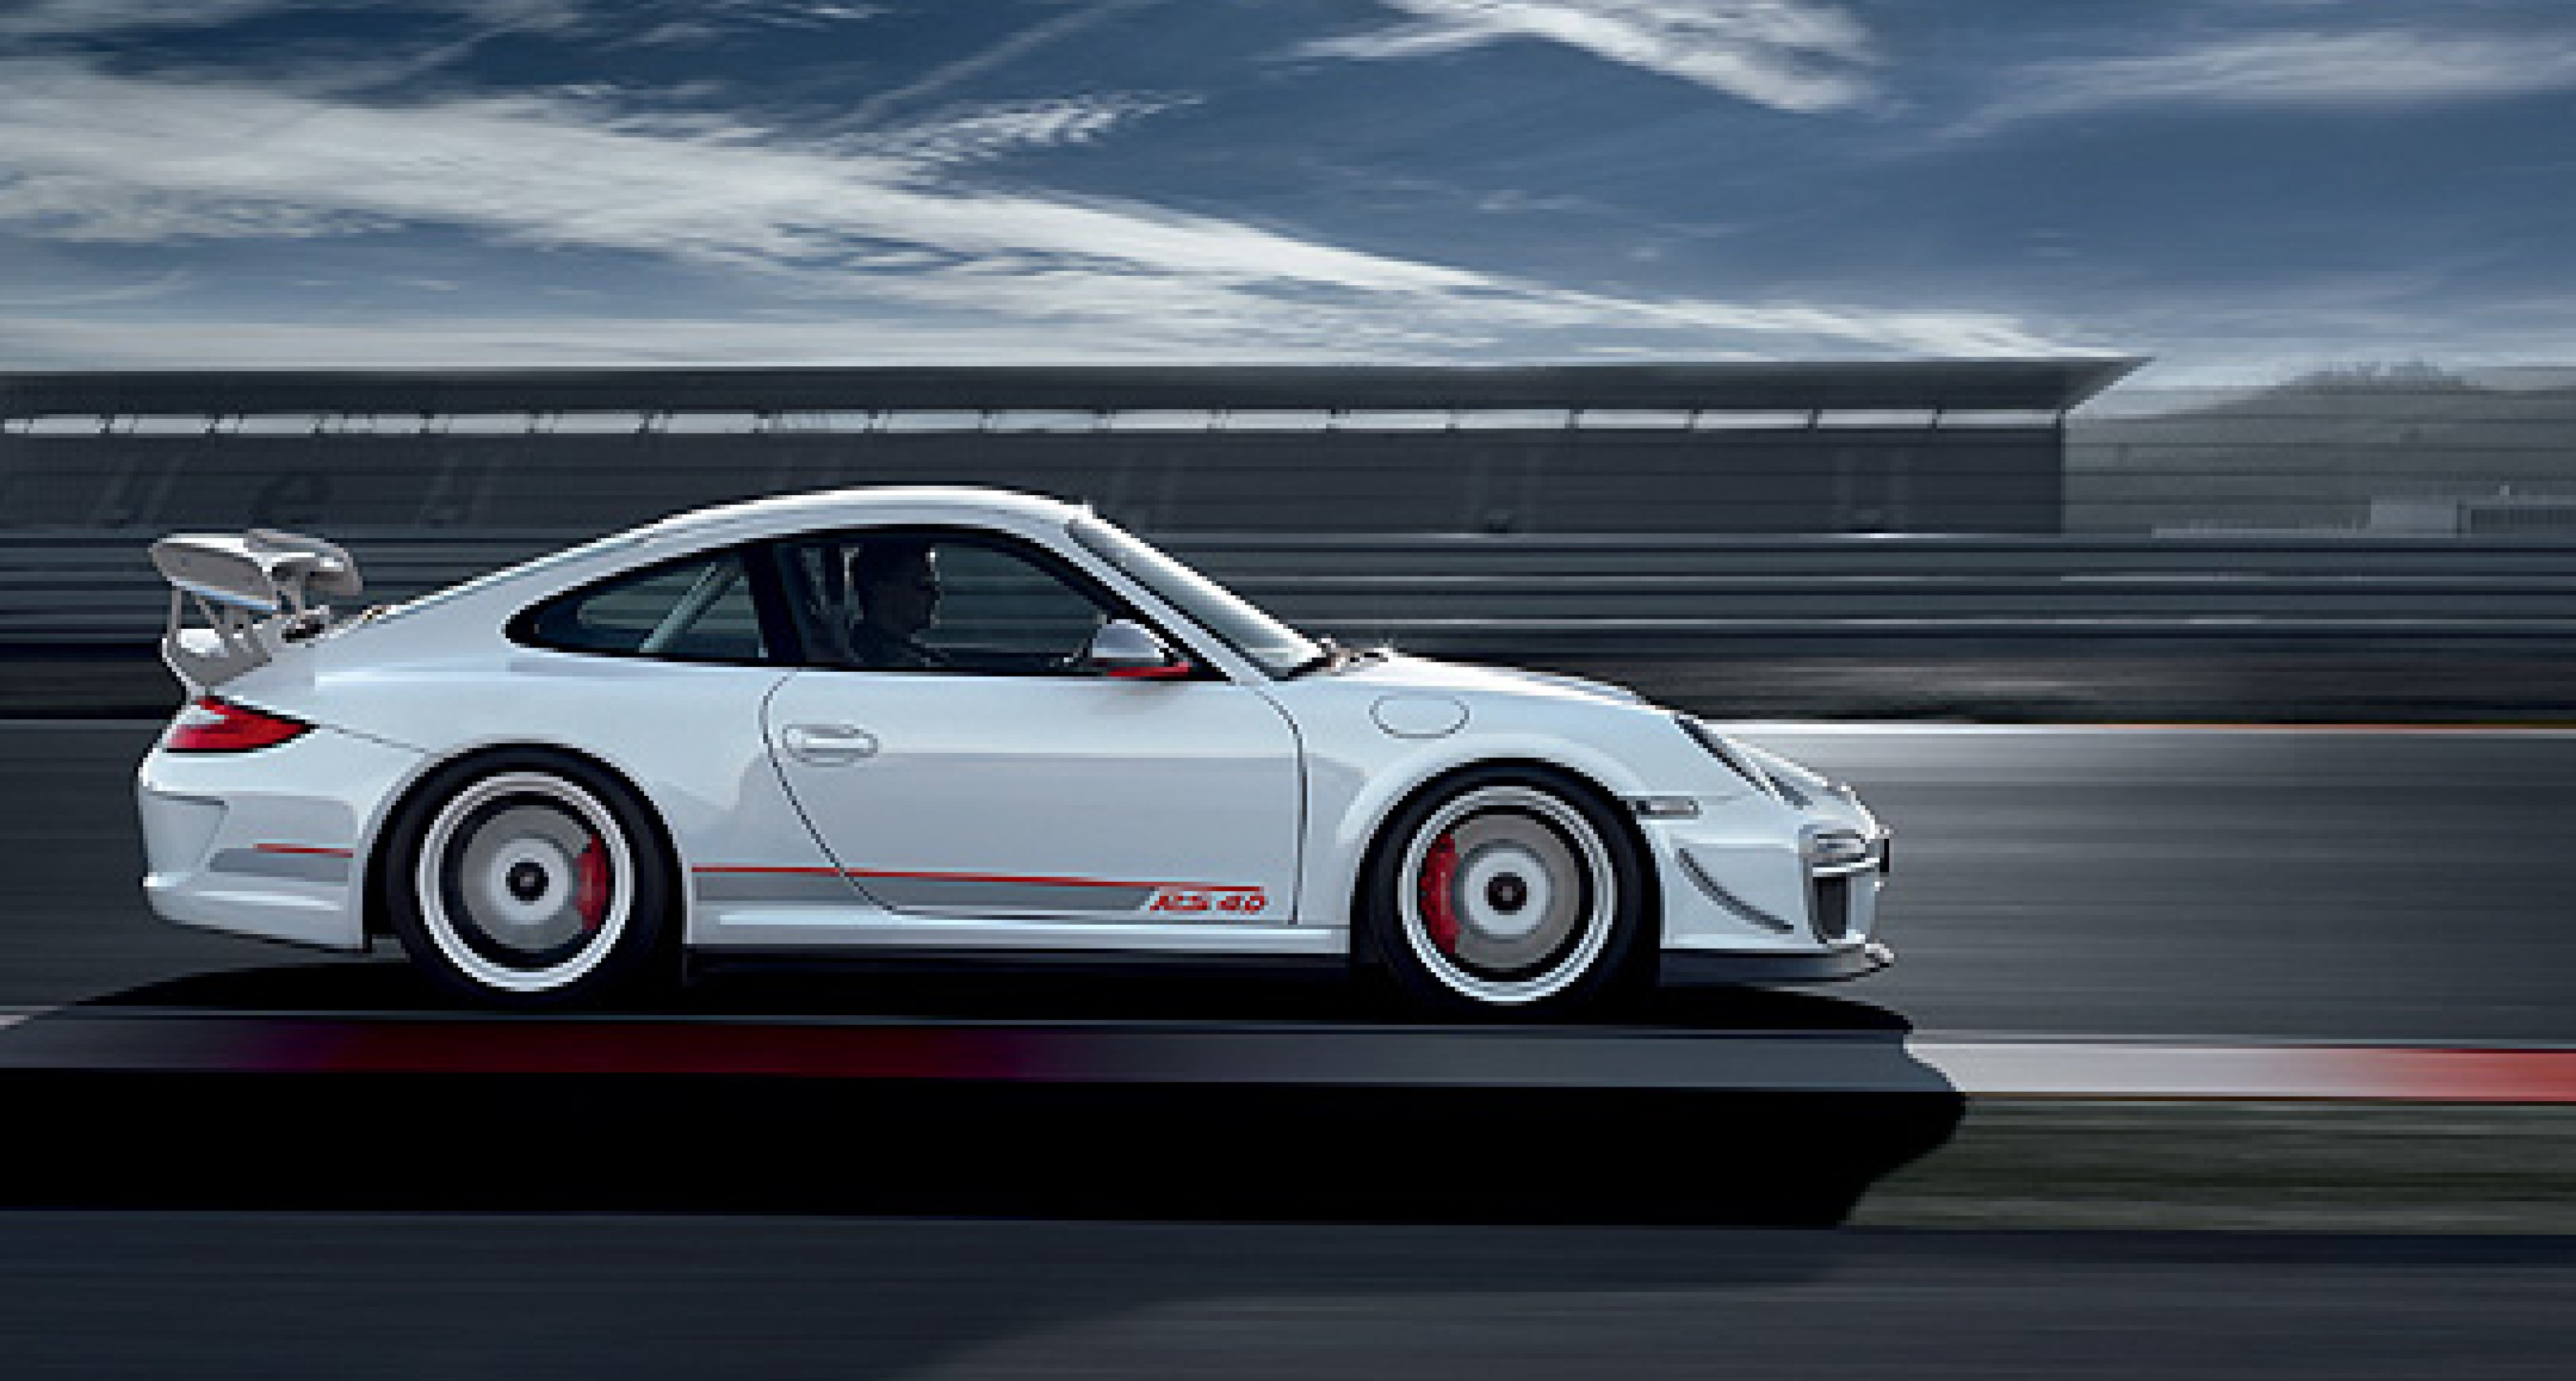 Porsche 911 GT3 RS 4.0 – the latest 'ultimate' 911